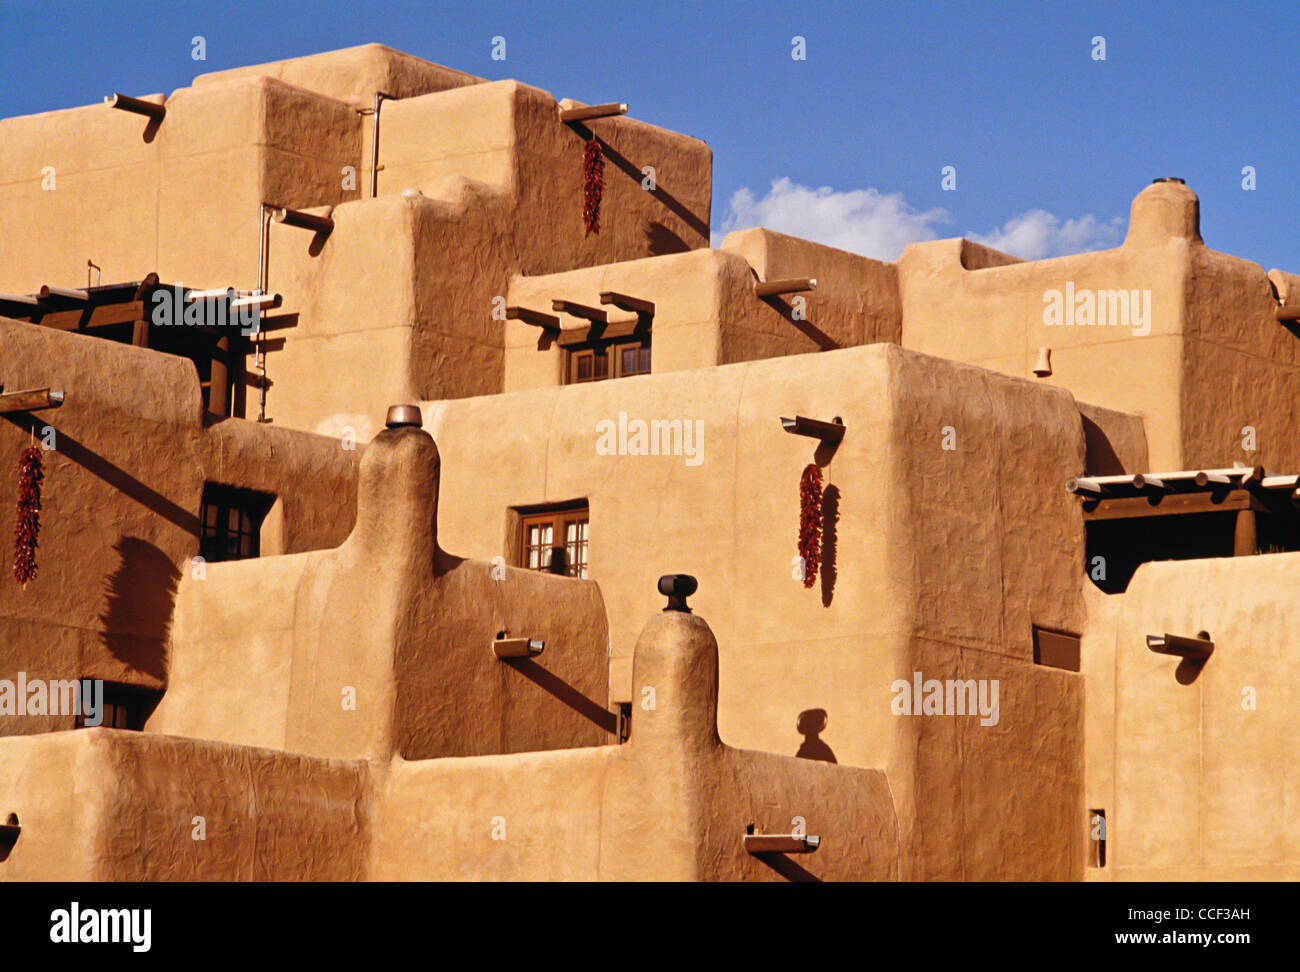 list of synonyms and antonyms of the word  pueblo buildings